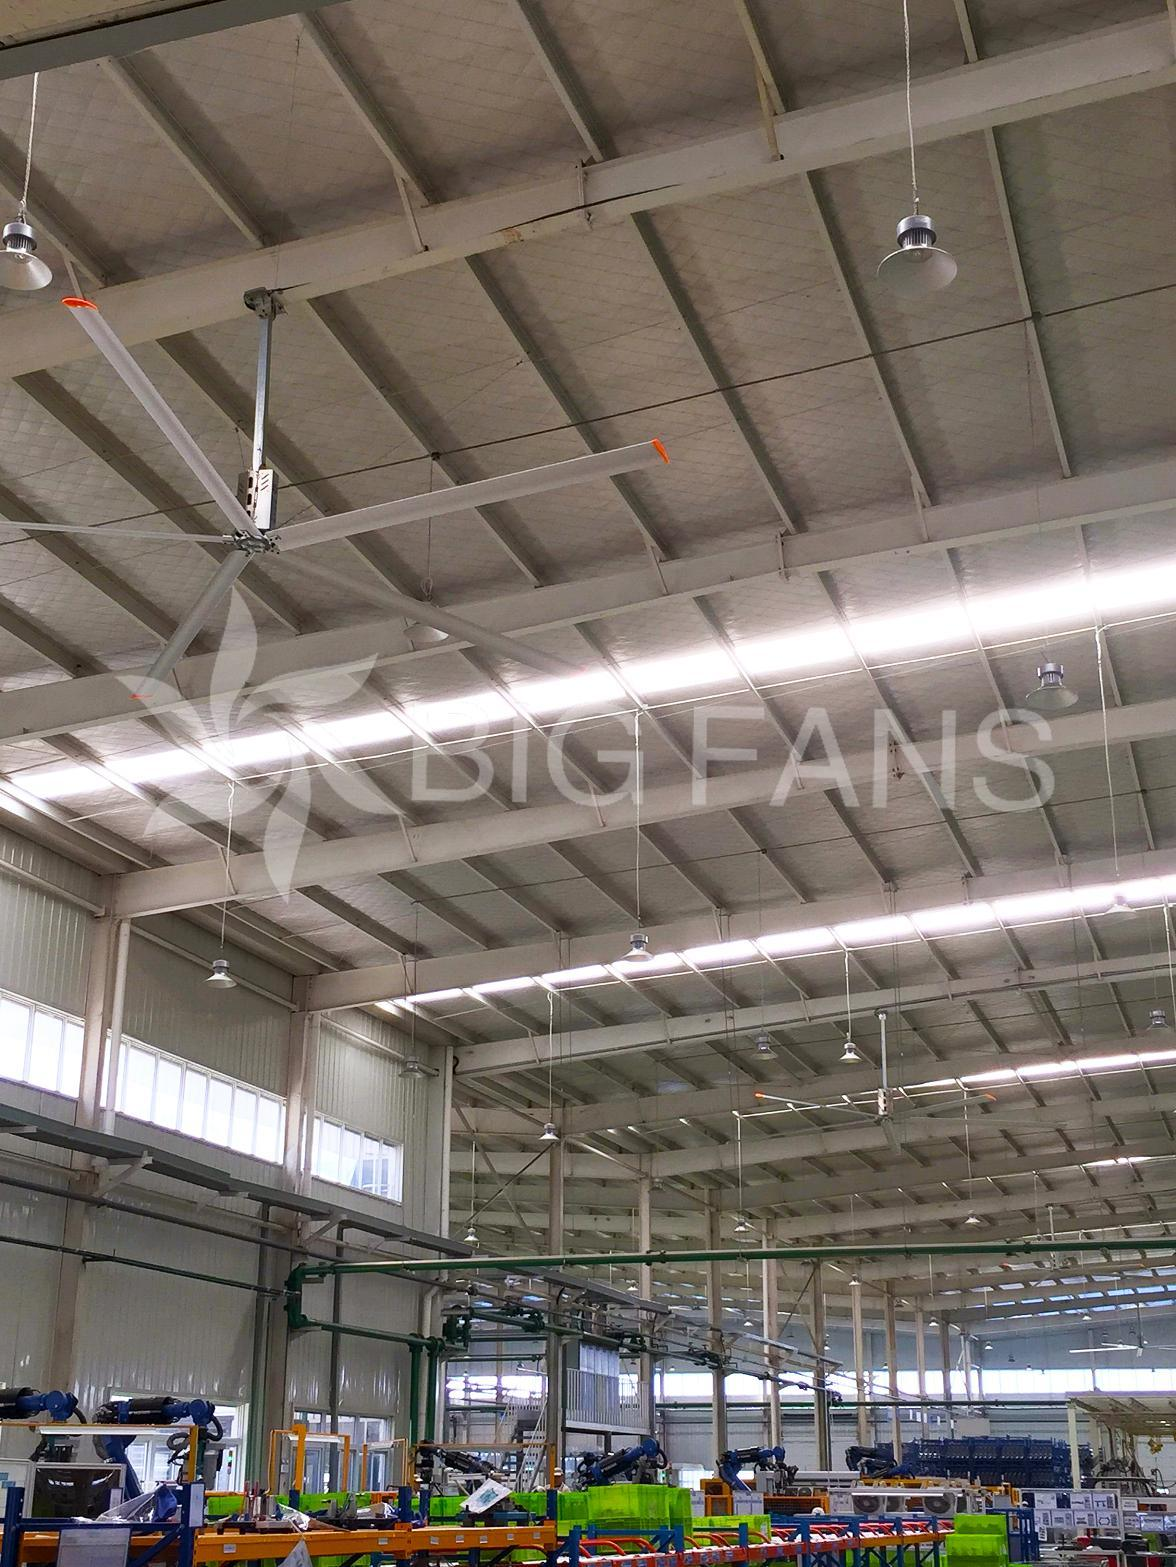 Bigfans 7.4m 380V AC Big Industrial Ventilation Fans